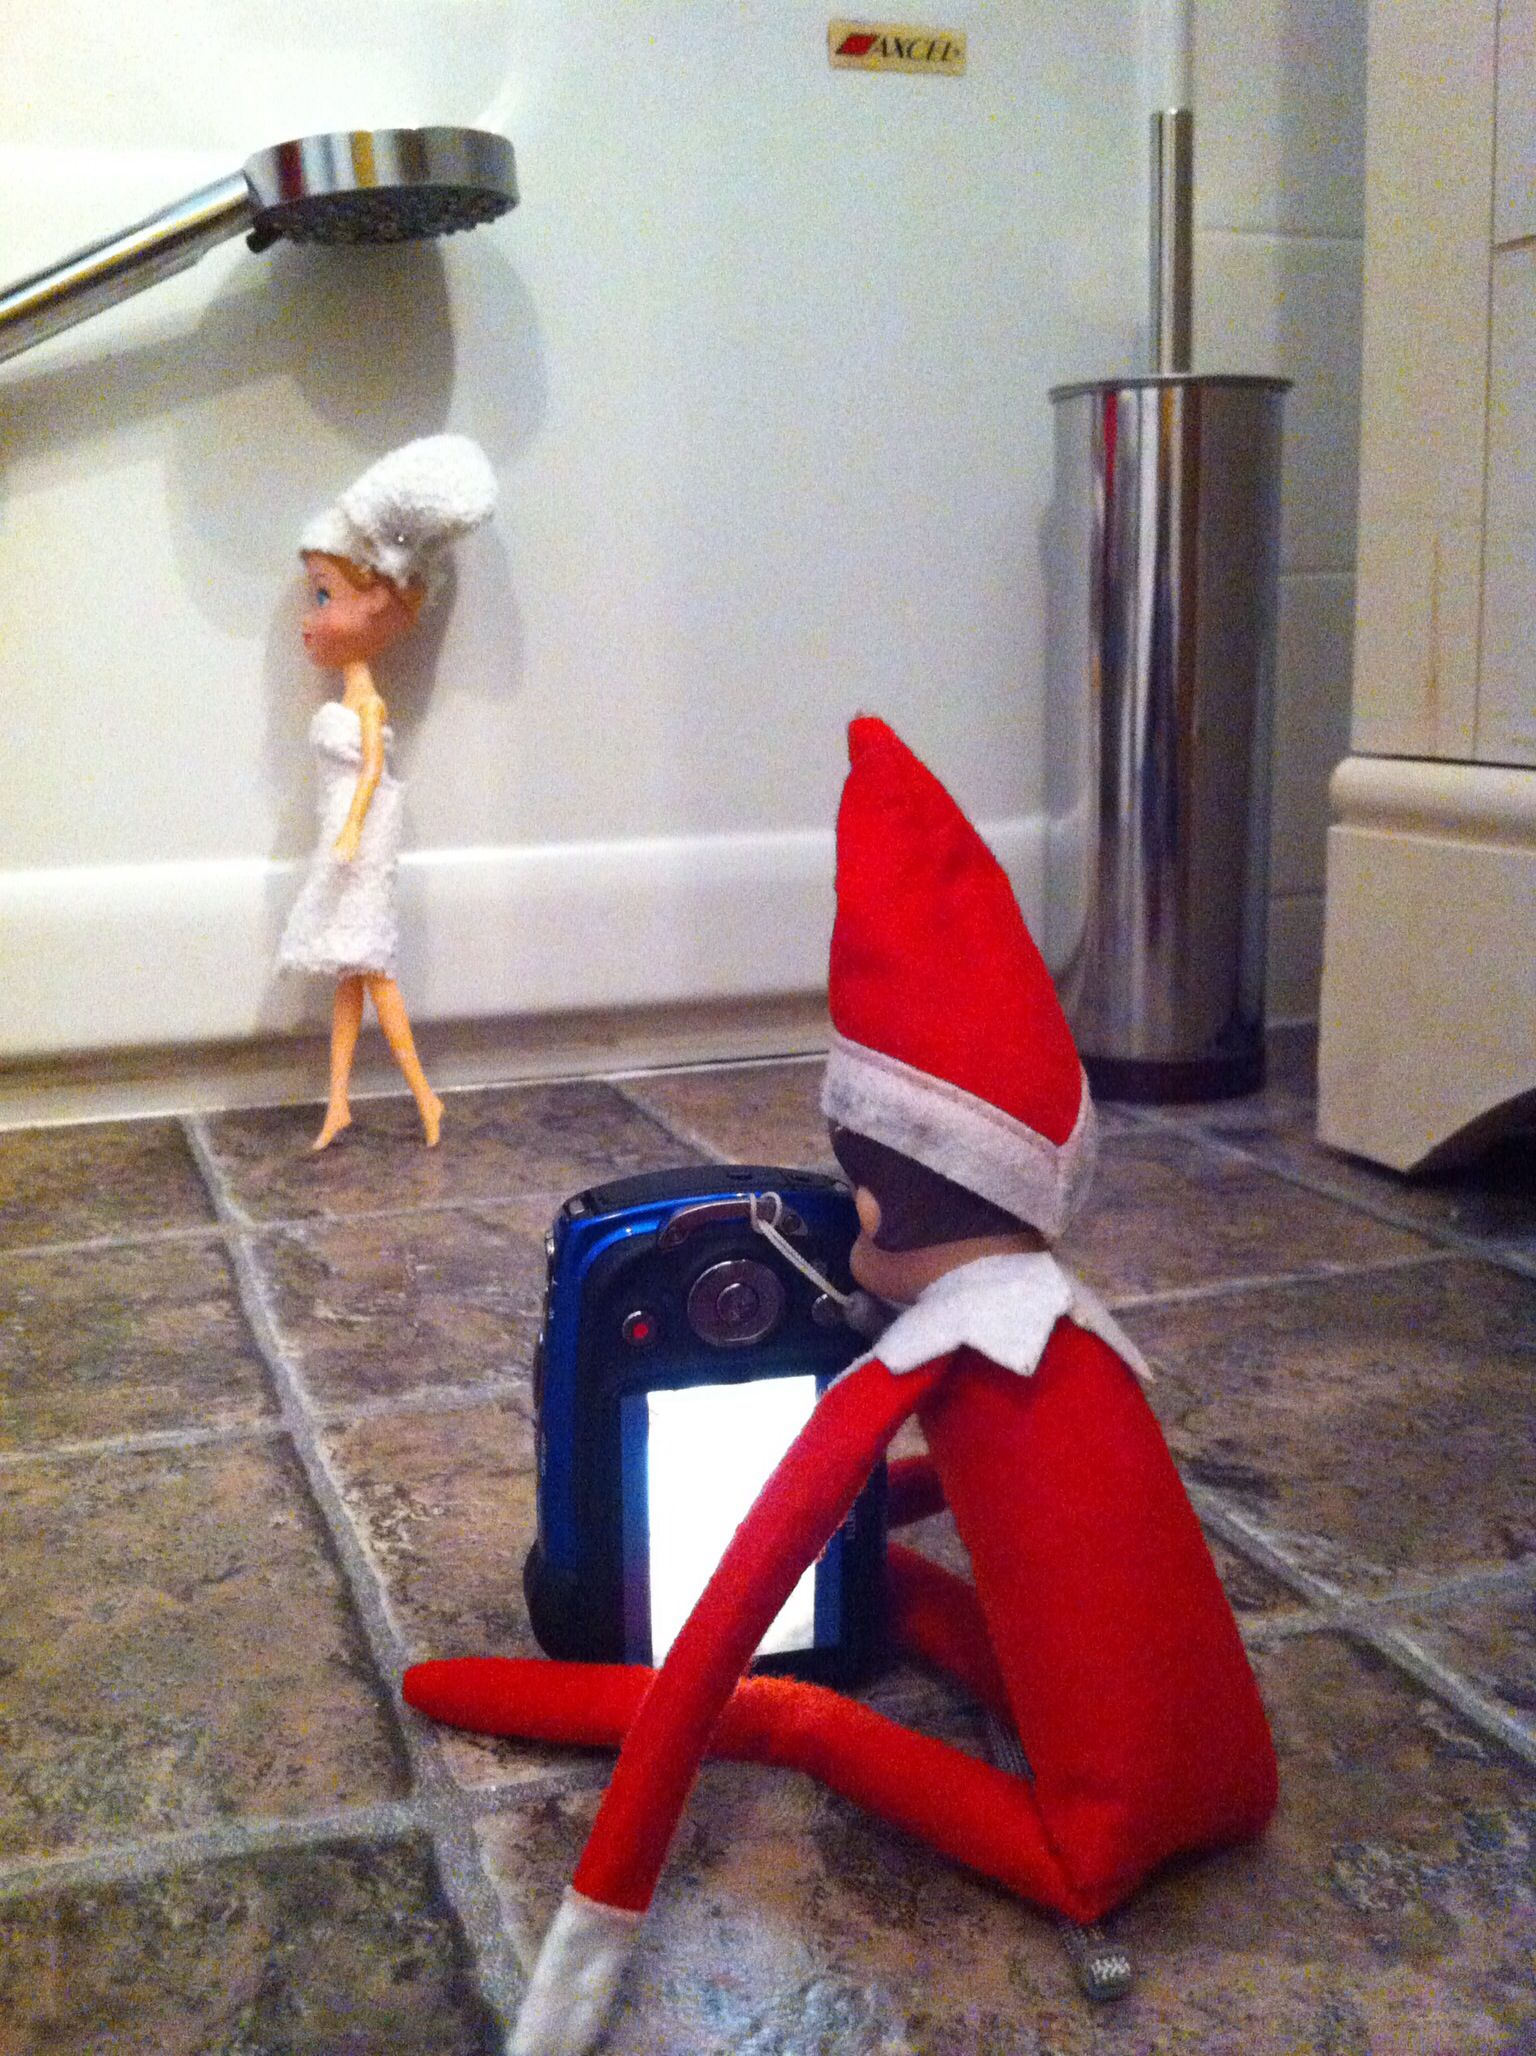 7 Reasons Why We Are Not Doing Elf on a Shelf]